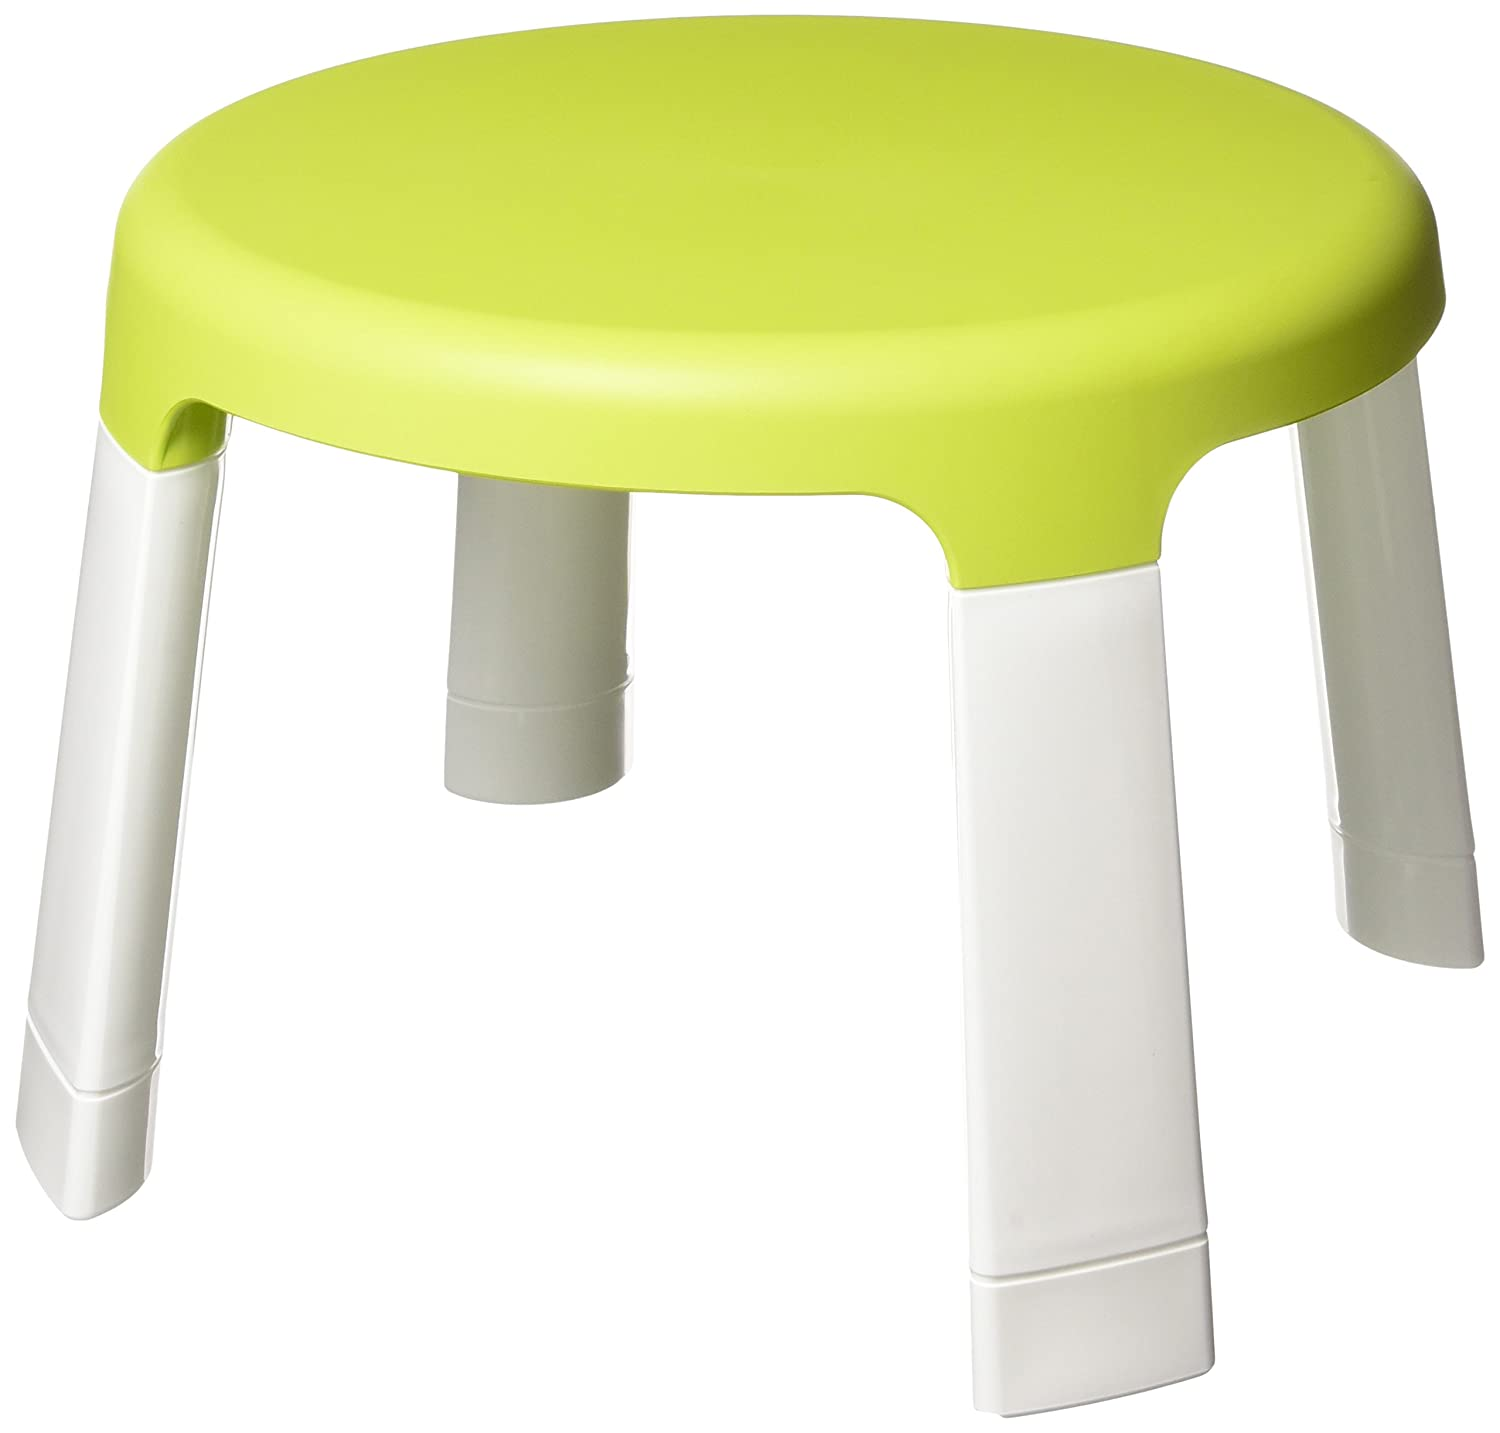 Oribel PortaPlay Child Stools, Green CY303-90006